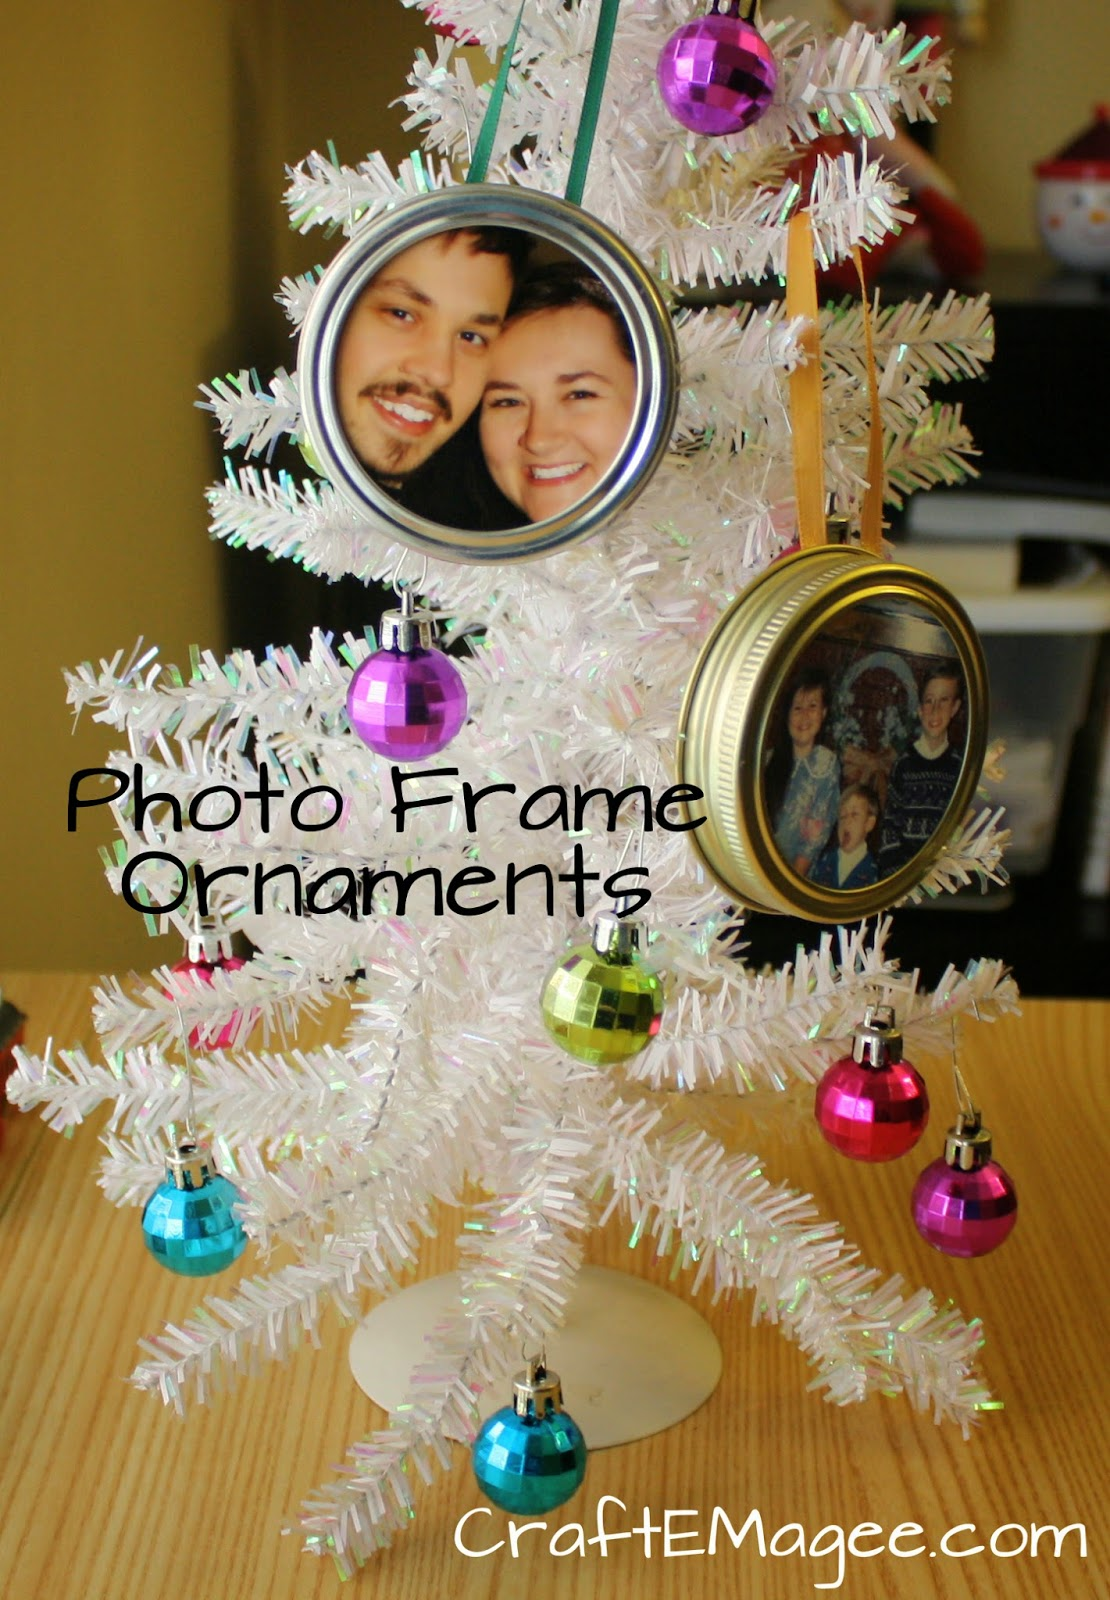 Craft e magee easy photo frame ornaments for Photo frame ornament craft